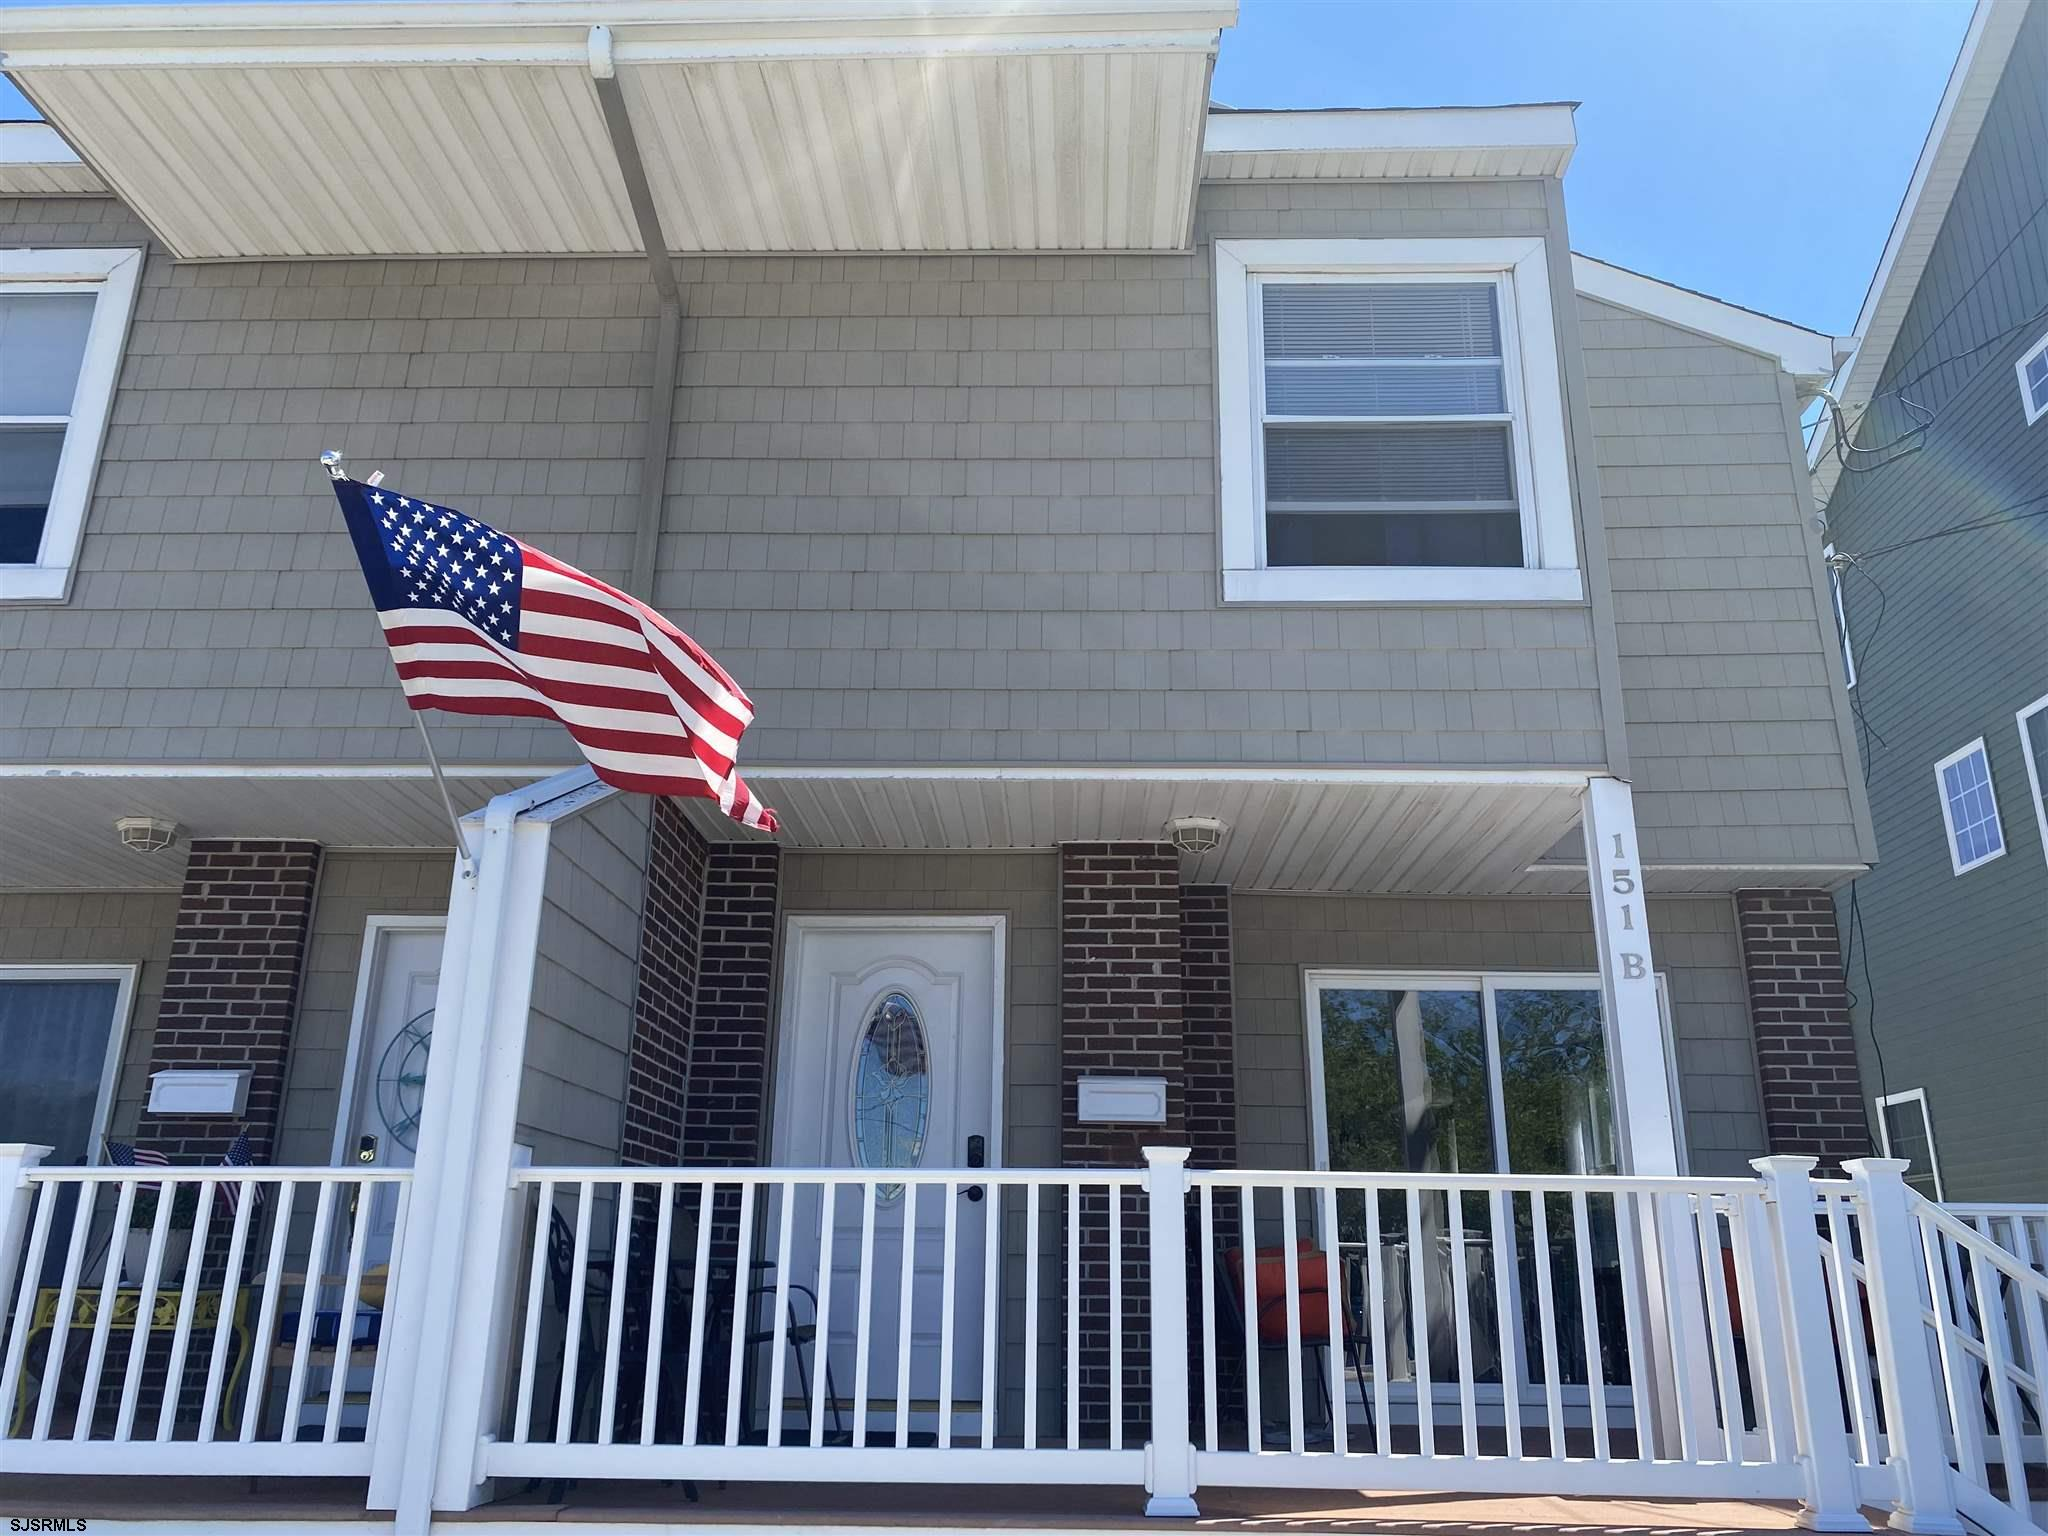 Perfect Corner Property 3 bedroom s, 1.5 bath  townhouse. Generating  summer income. Freshly painted